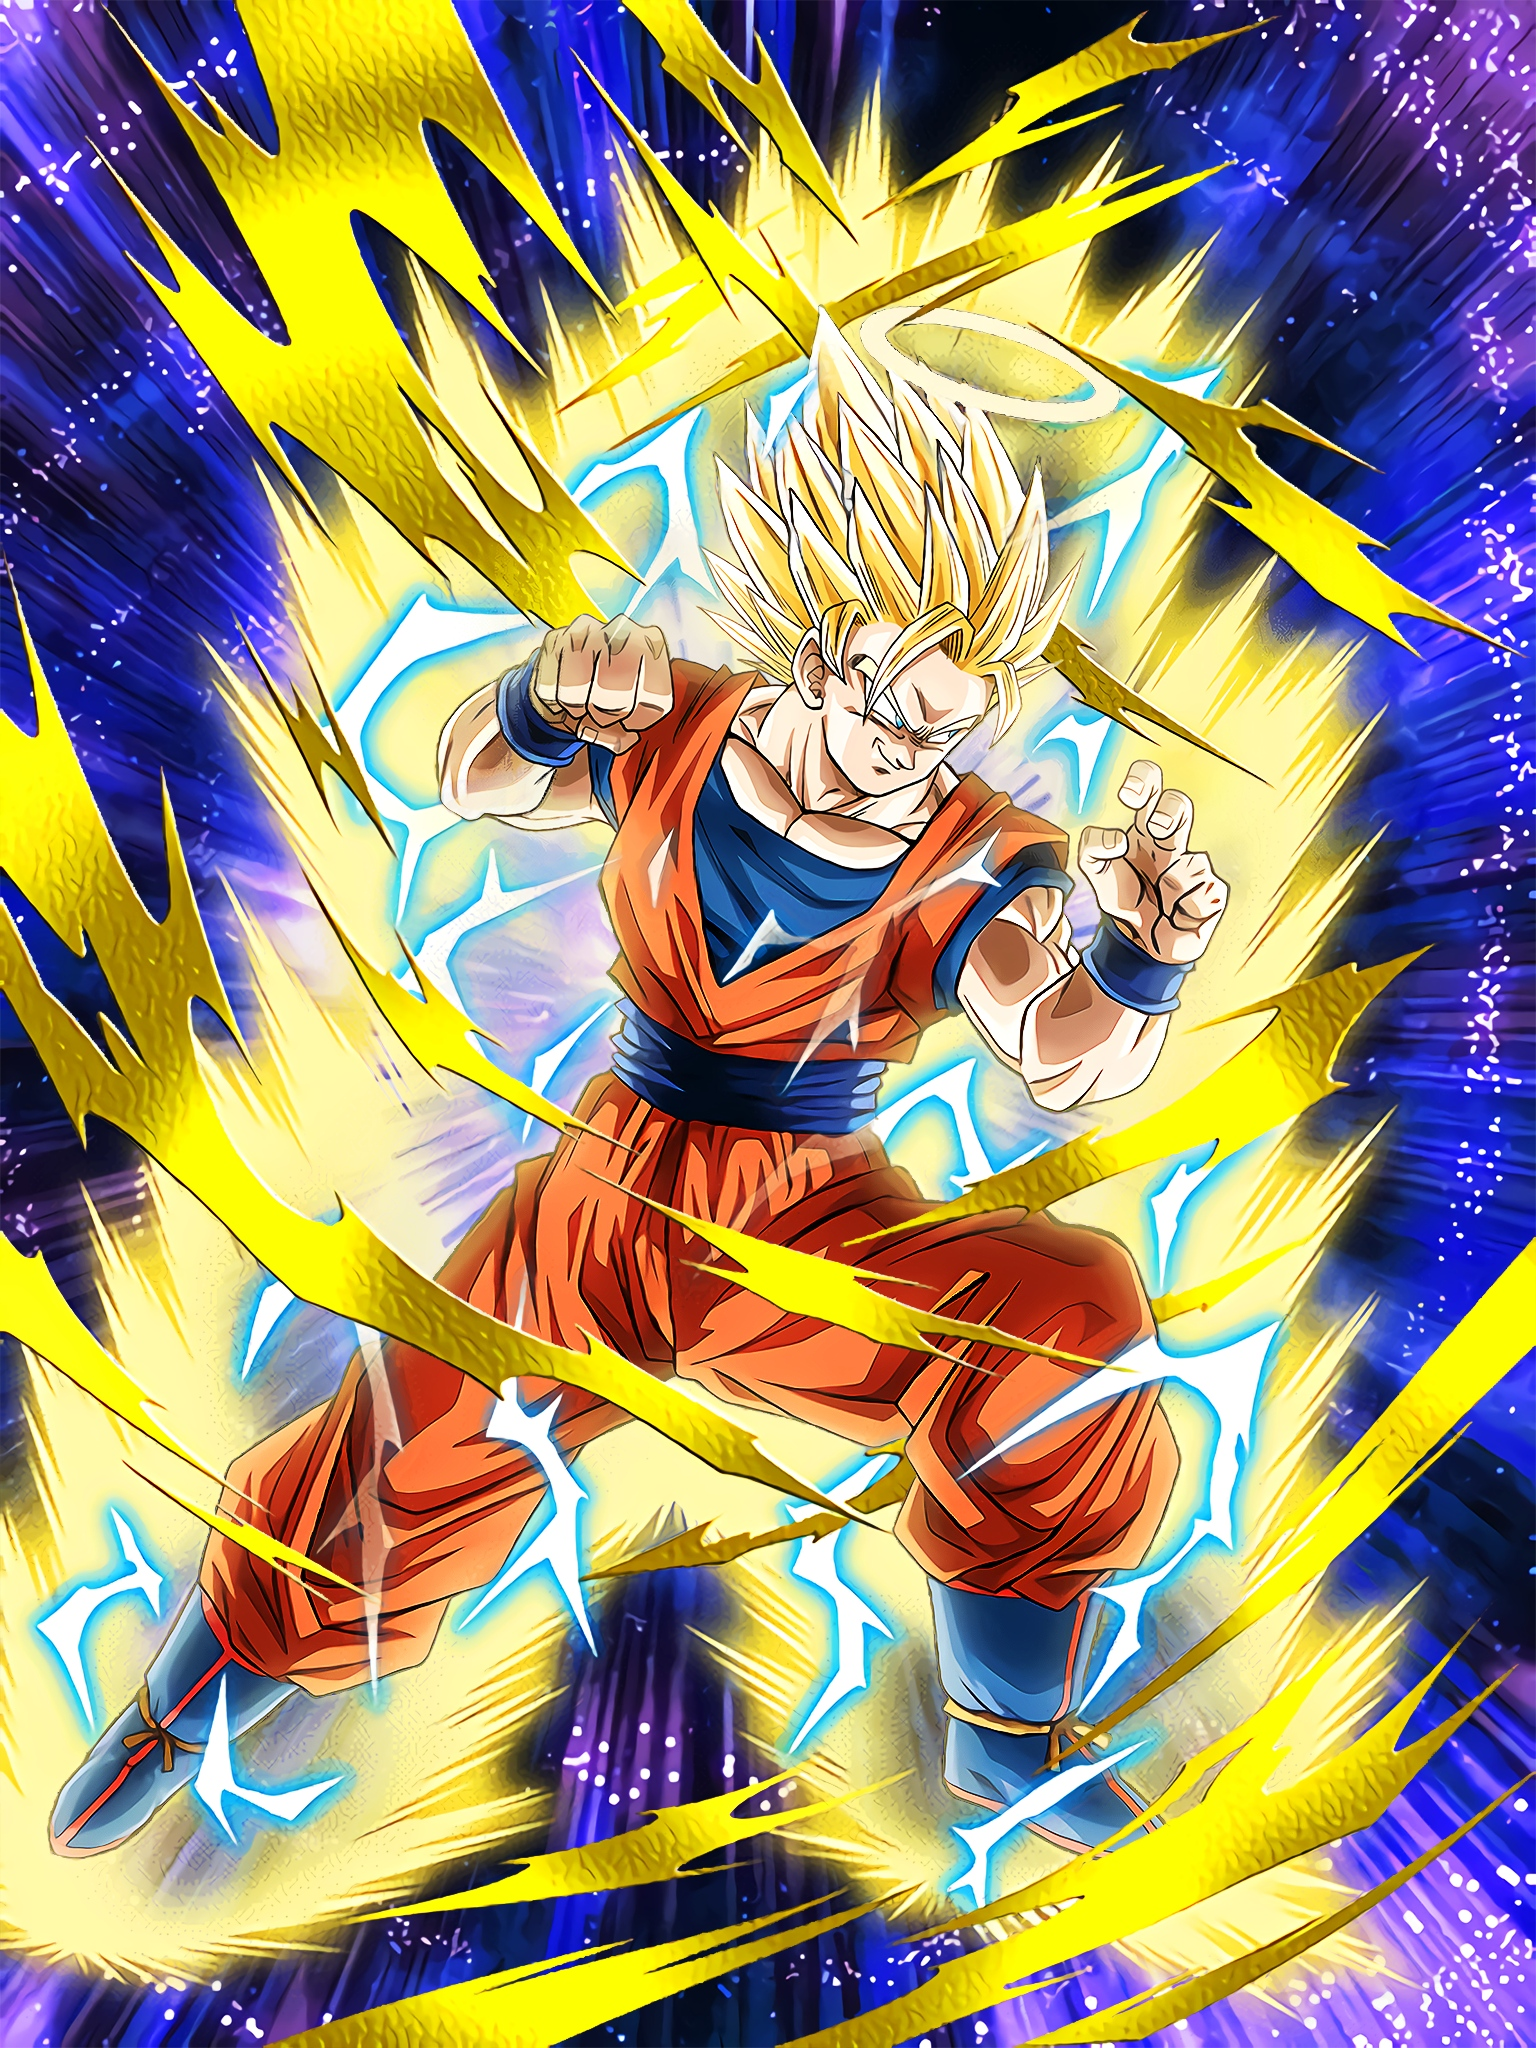 Instinct of the Warrior Race Super Saiyan 2 Goku Angel Art (Dragon Ball Z Dokkan Battle).jpg